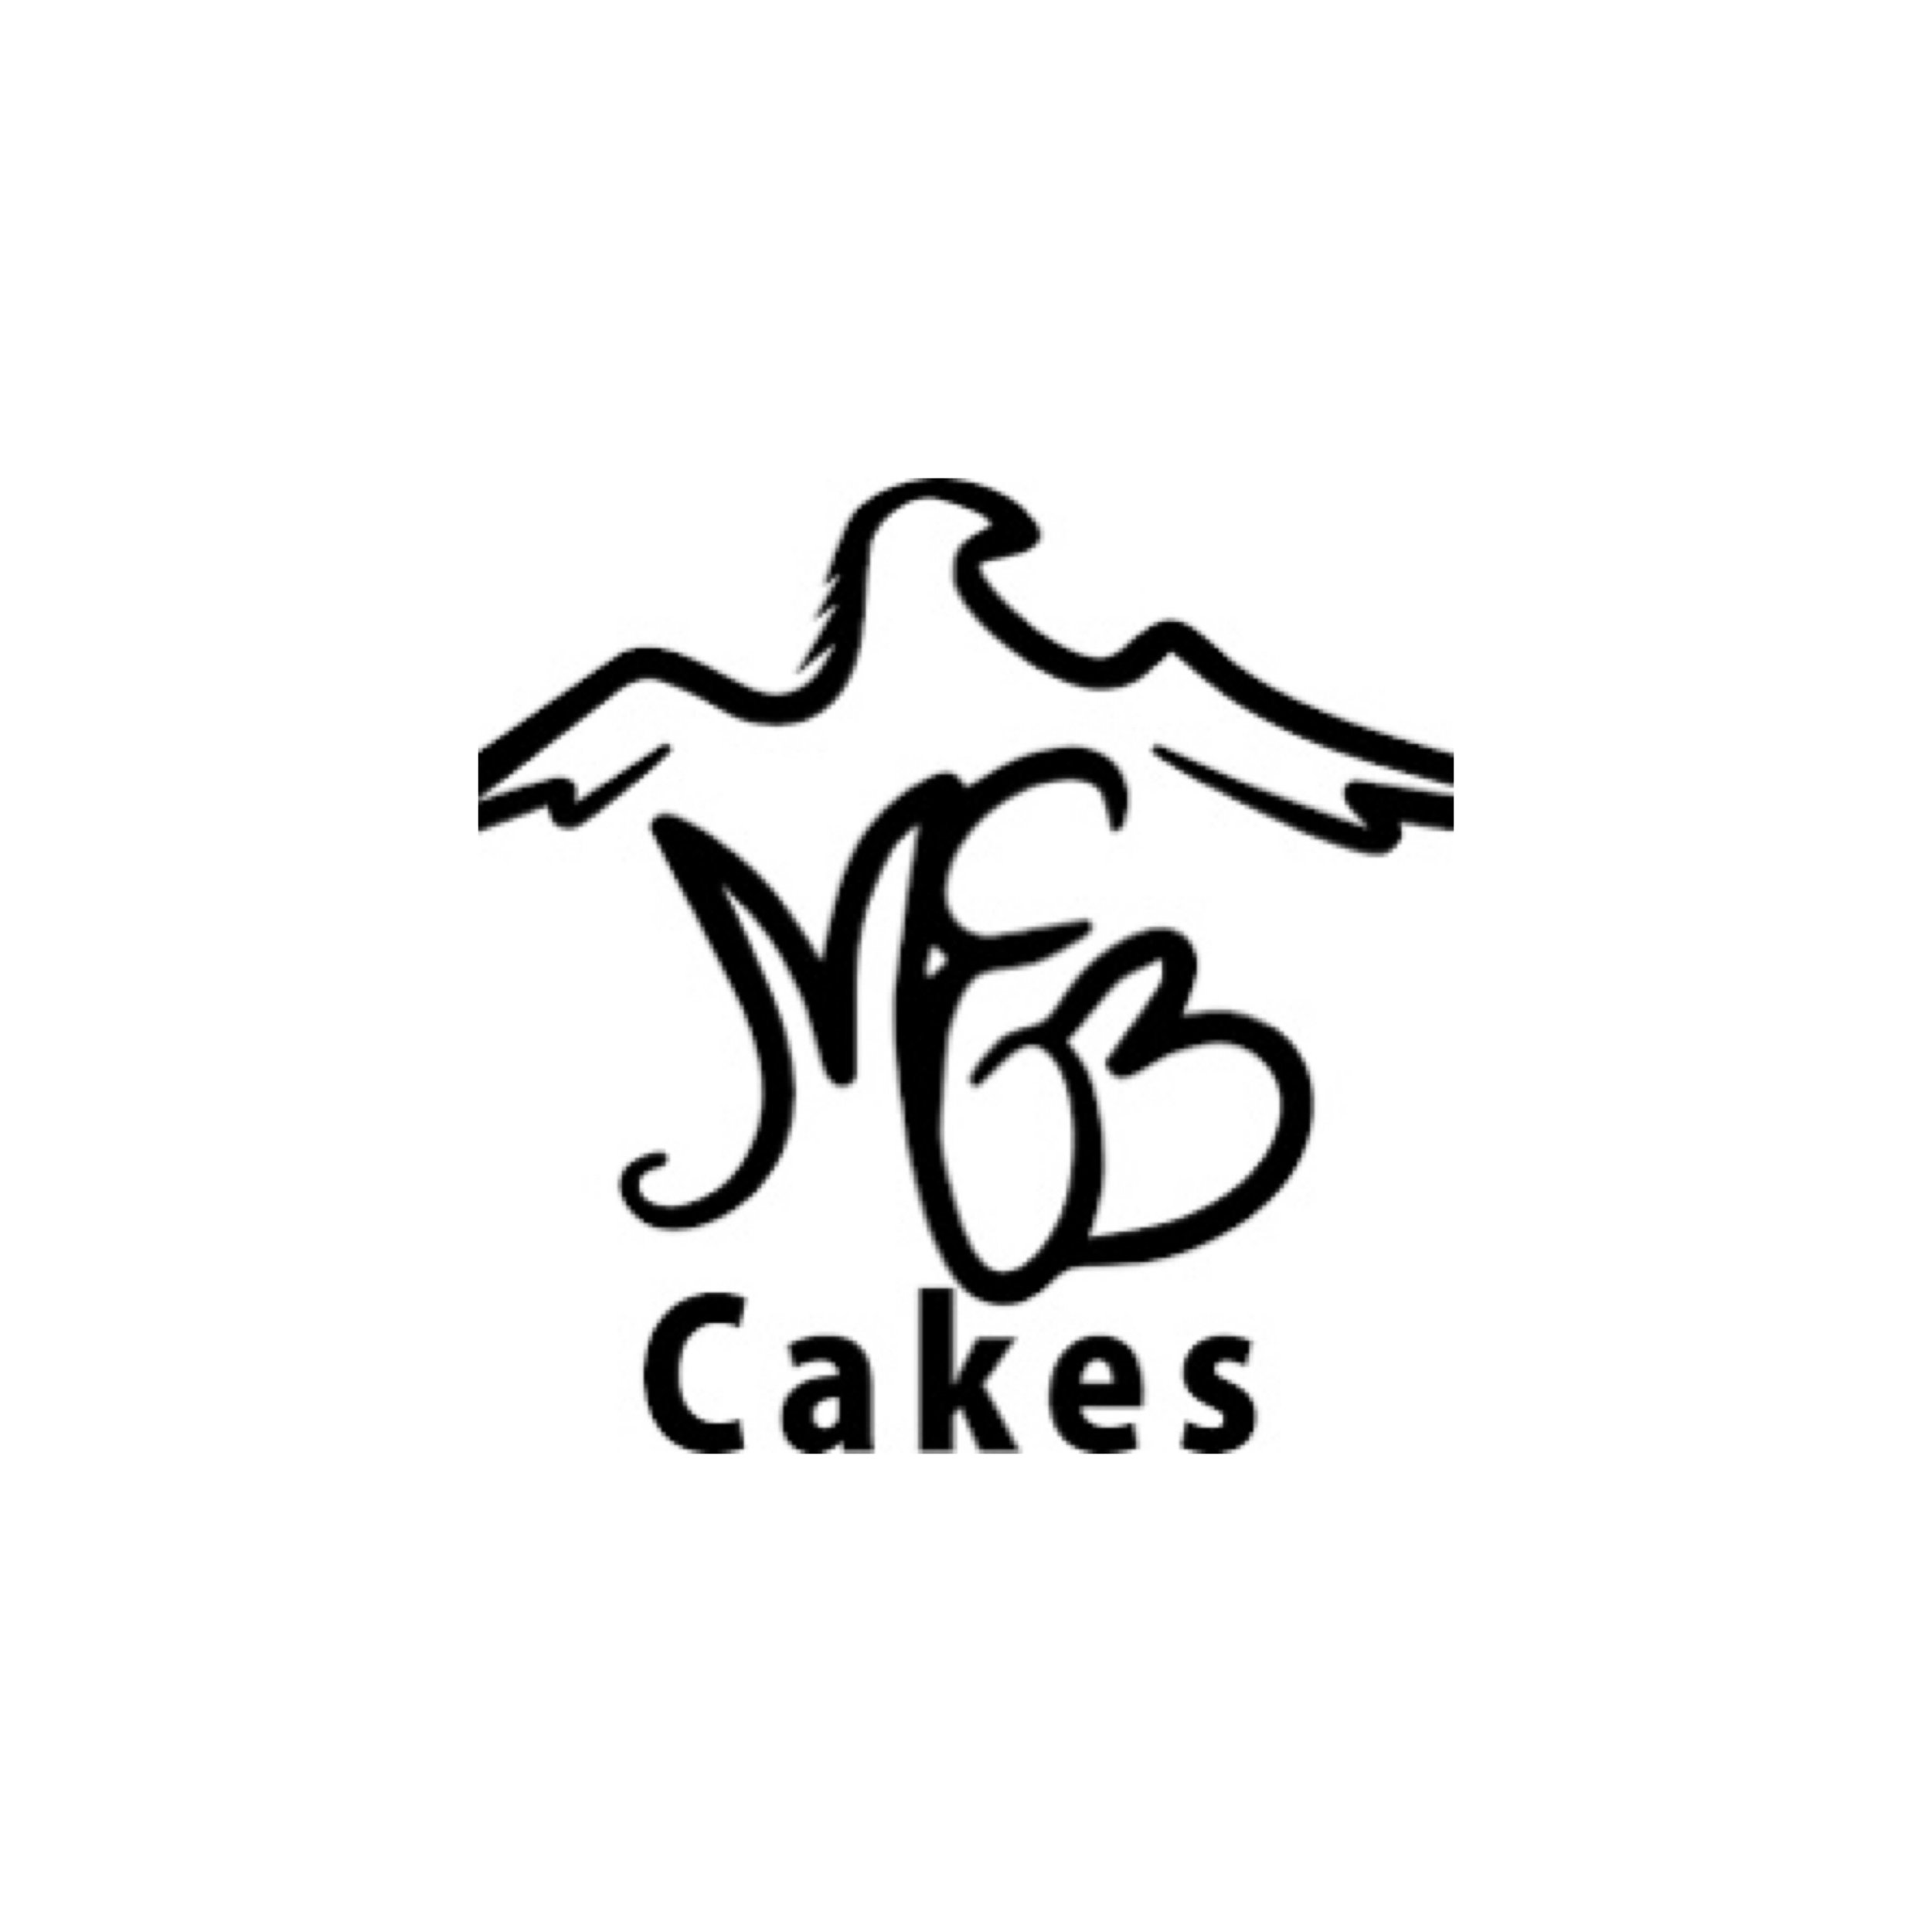 MEB Cakesweddings@mebcakes.com(281) 773-0964 -